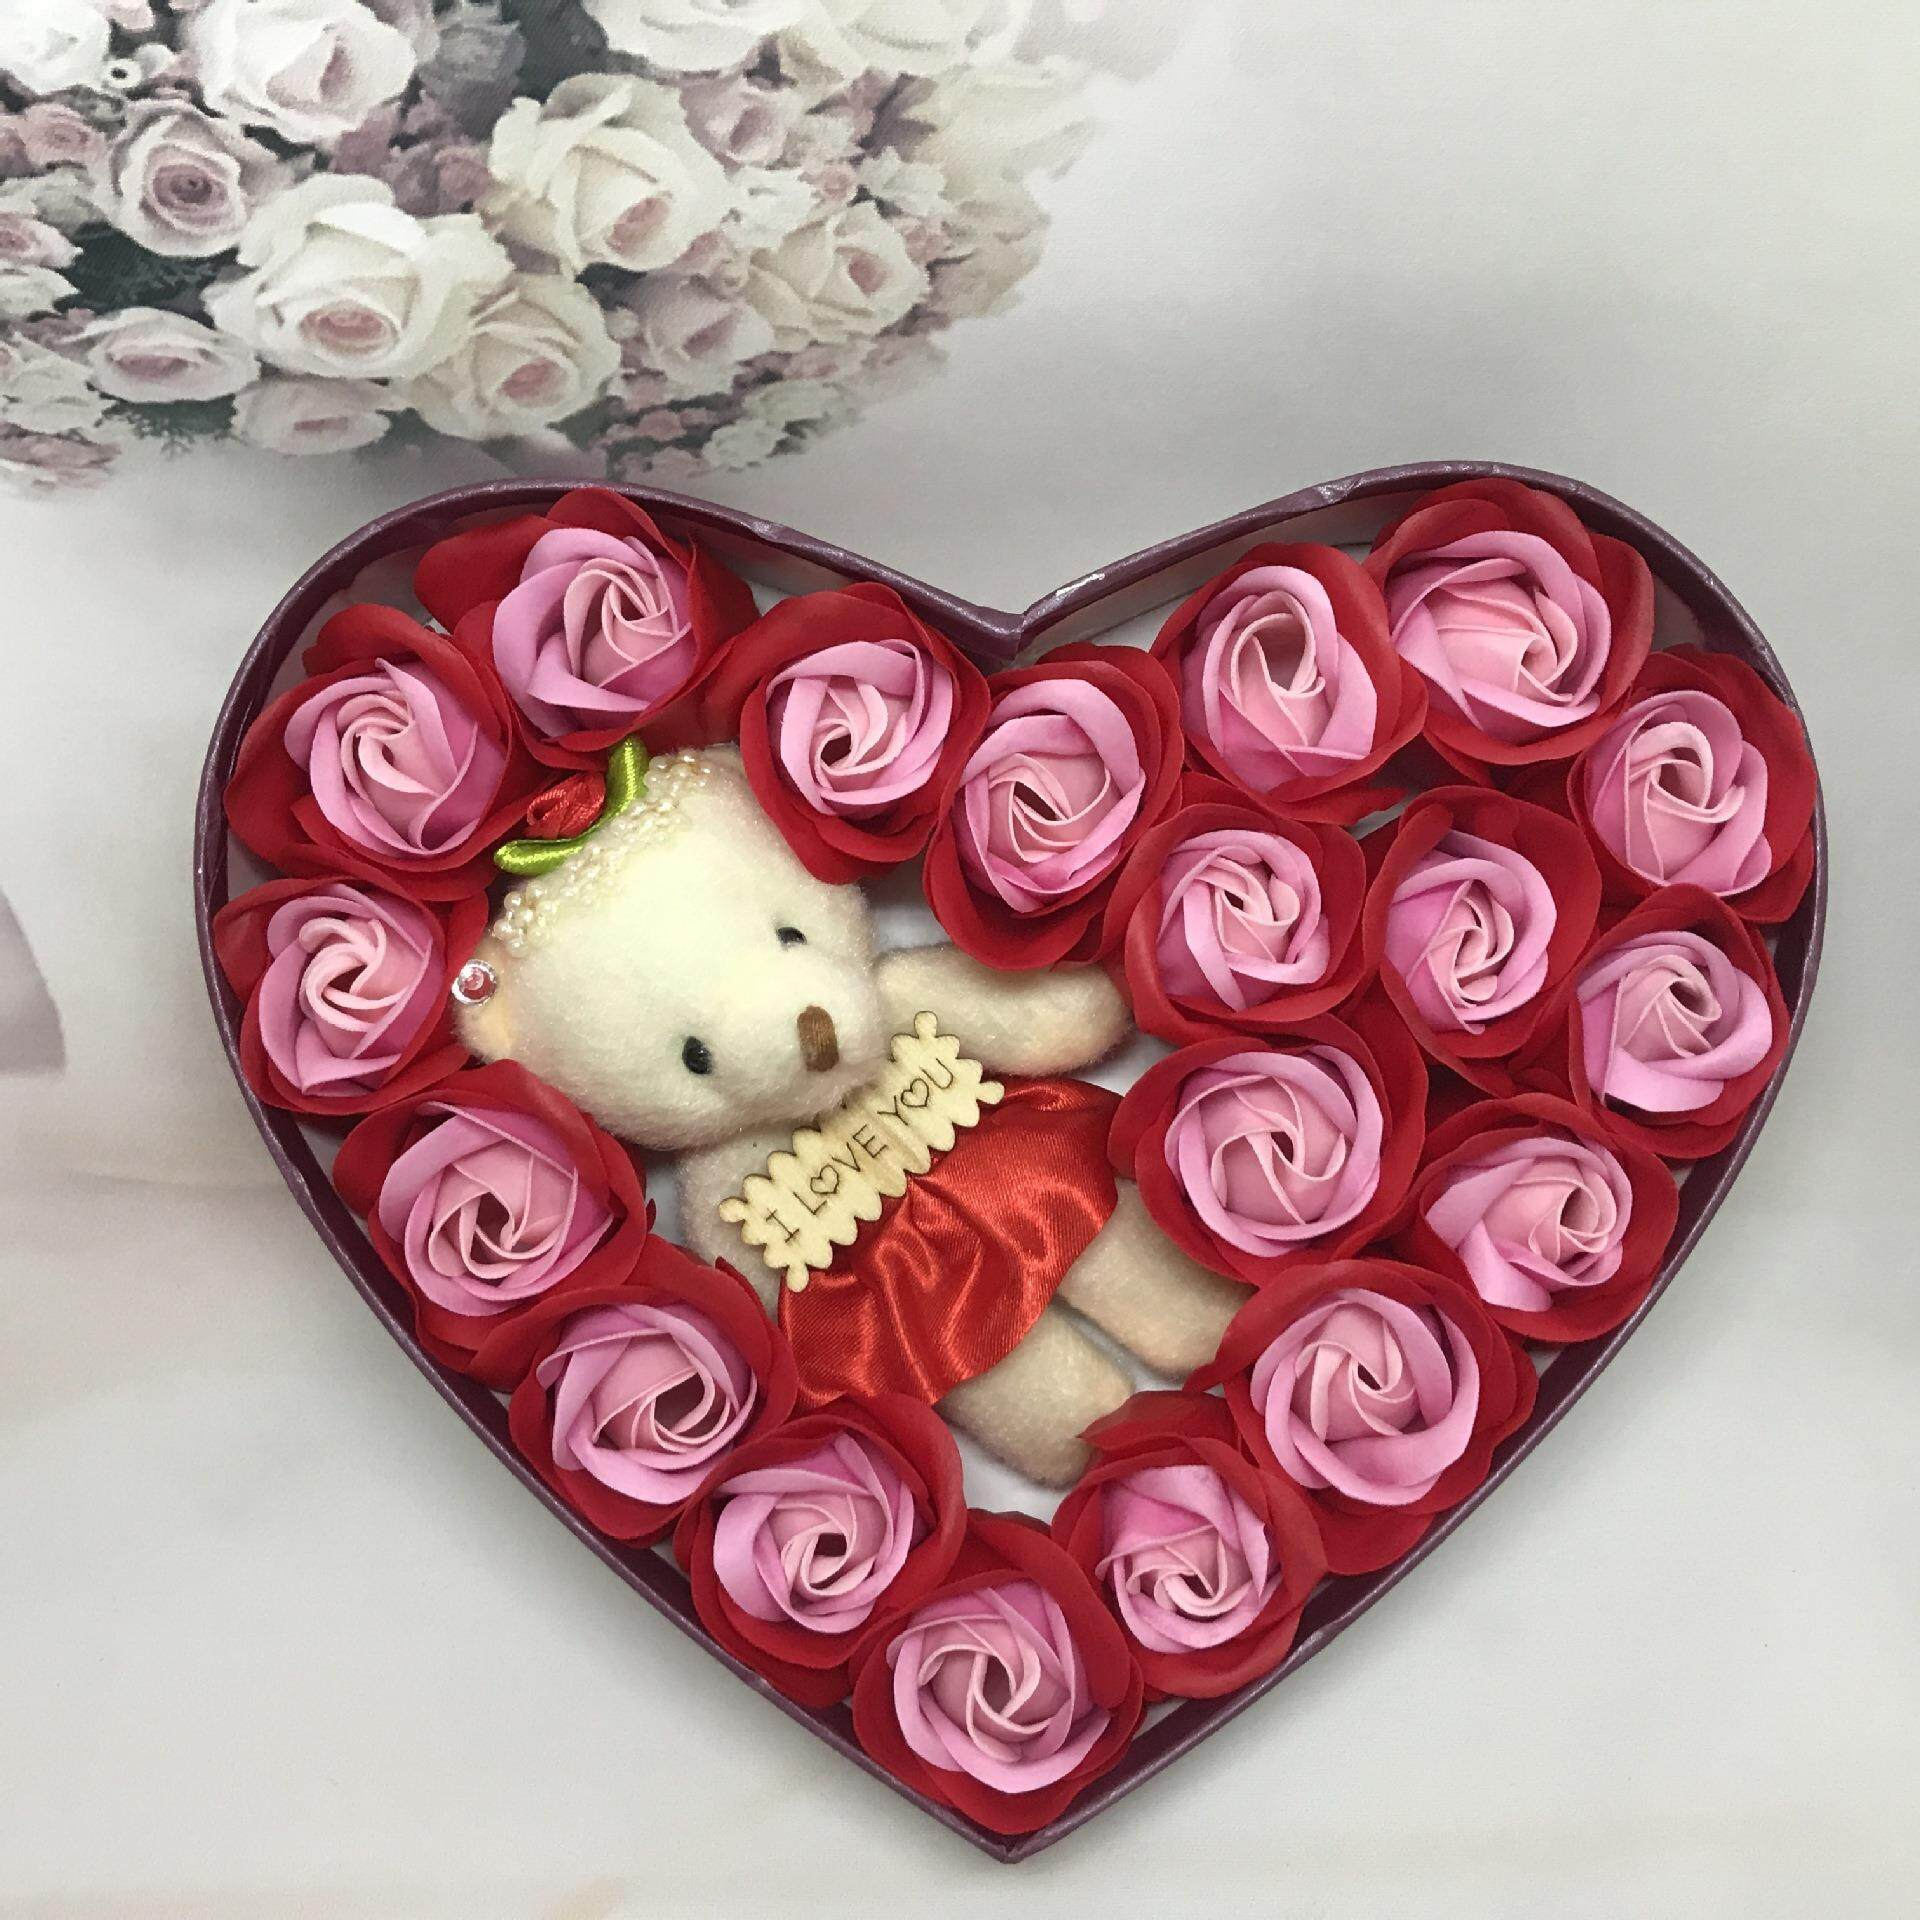 20 pcs Rose Flower Soap Heart Gft Box with Mini Doll Handmade Valentine Day Gift New Year Birthday Mother day Gift Present for Girl Friend